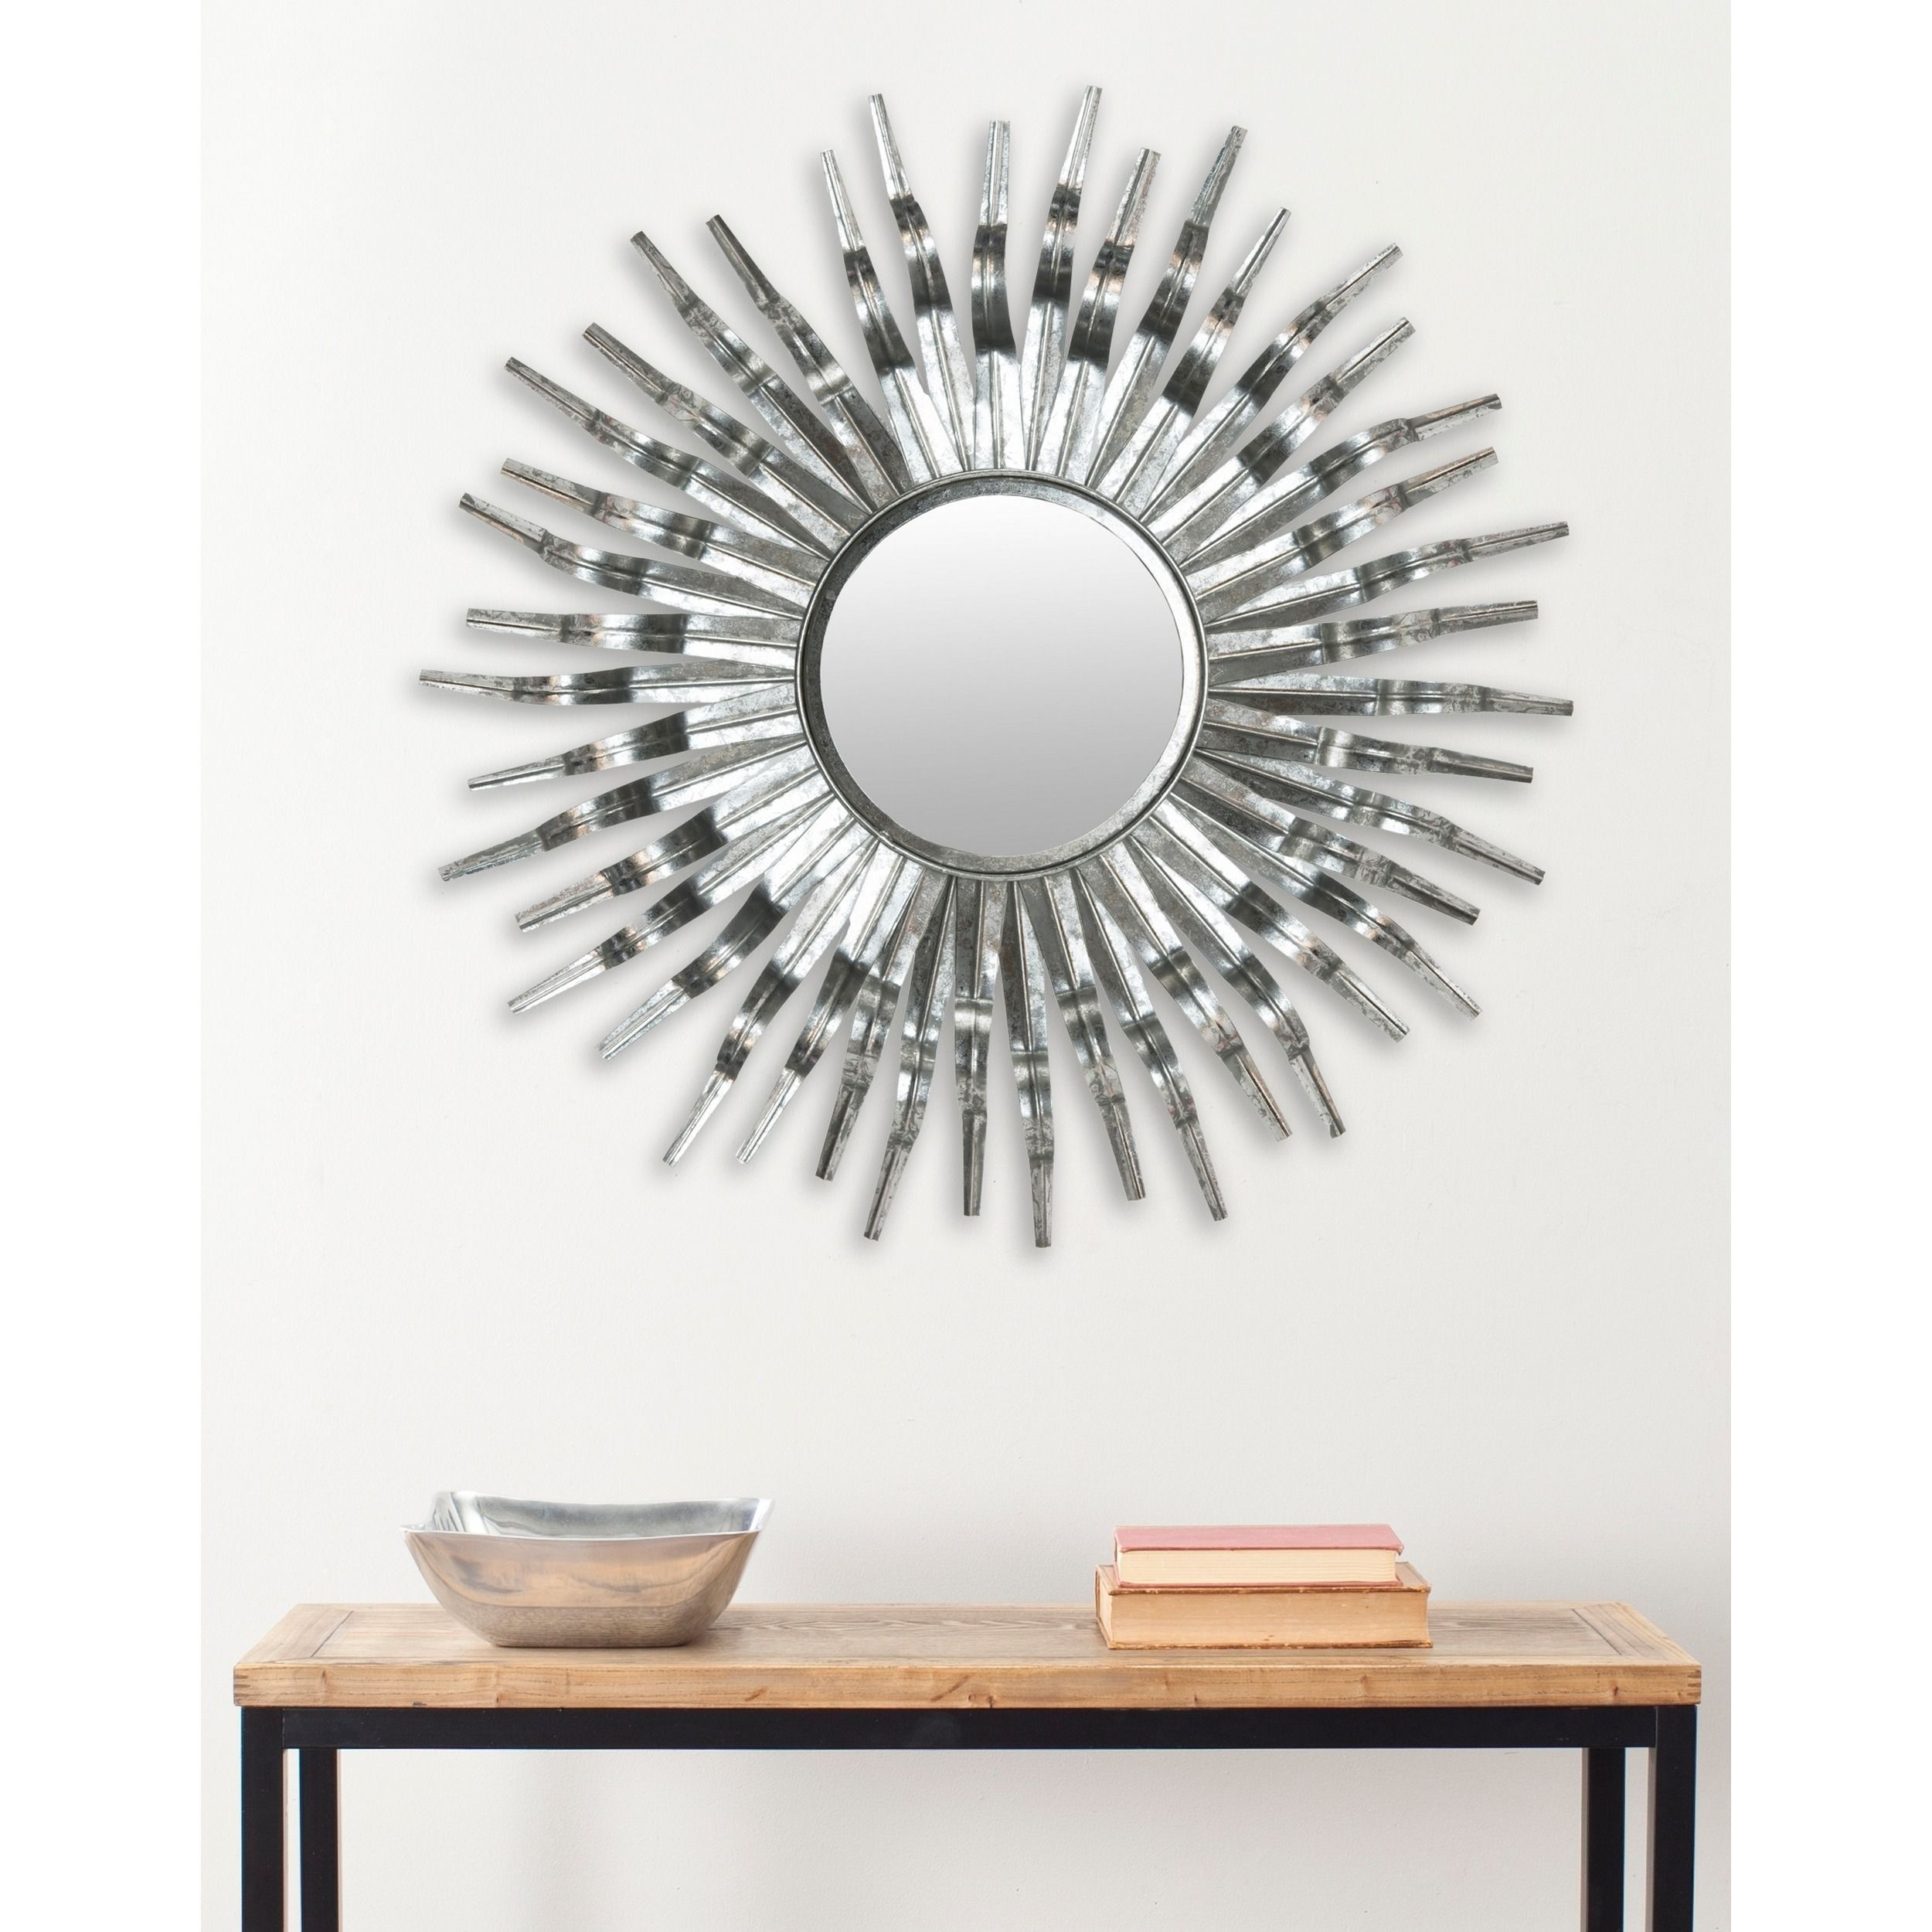 Safavieh Handmade Art Silver Sunburst 36 Inch Decorative Mirror 36 X 36 X 1 5 Framed Mirror Wall Mirror Wall Decor Mirror Wall